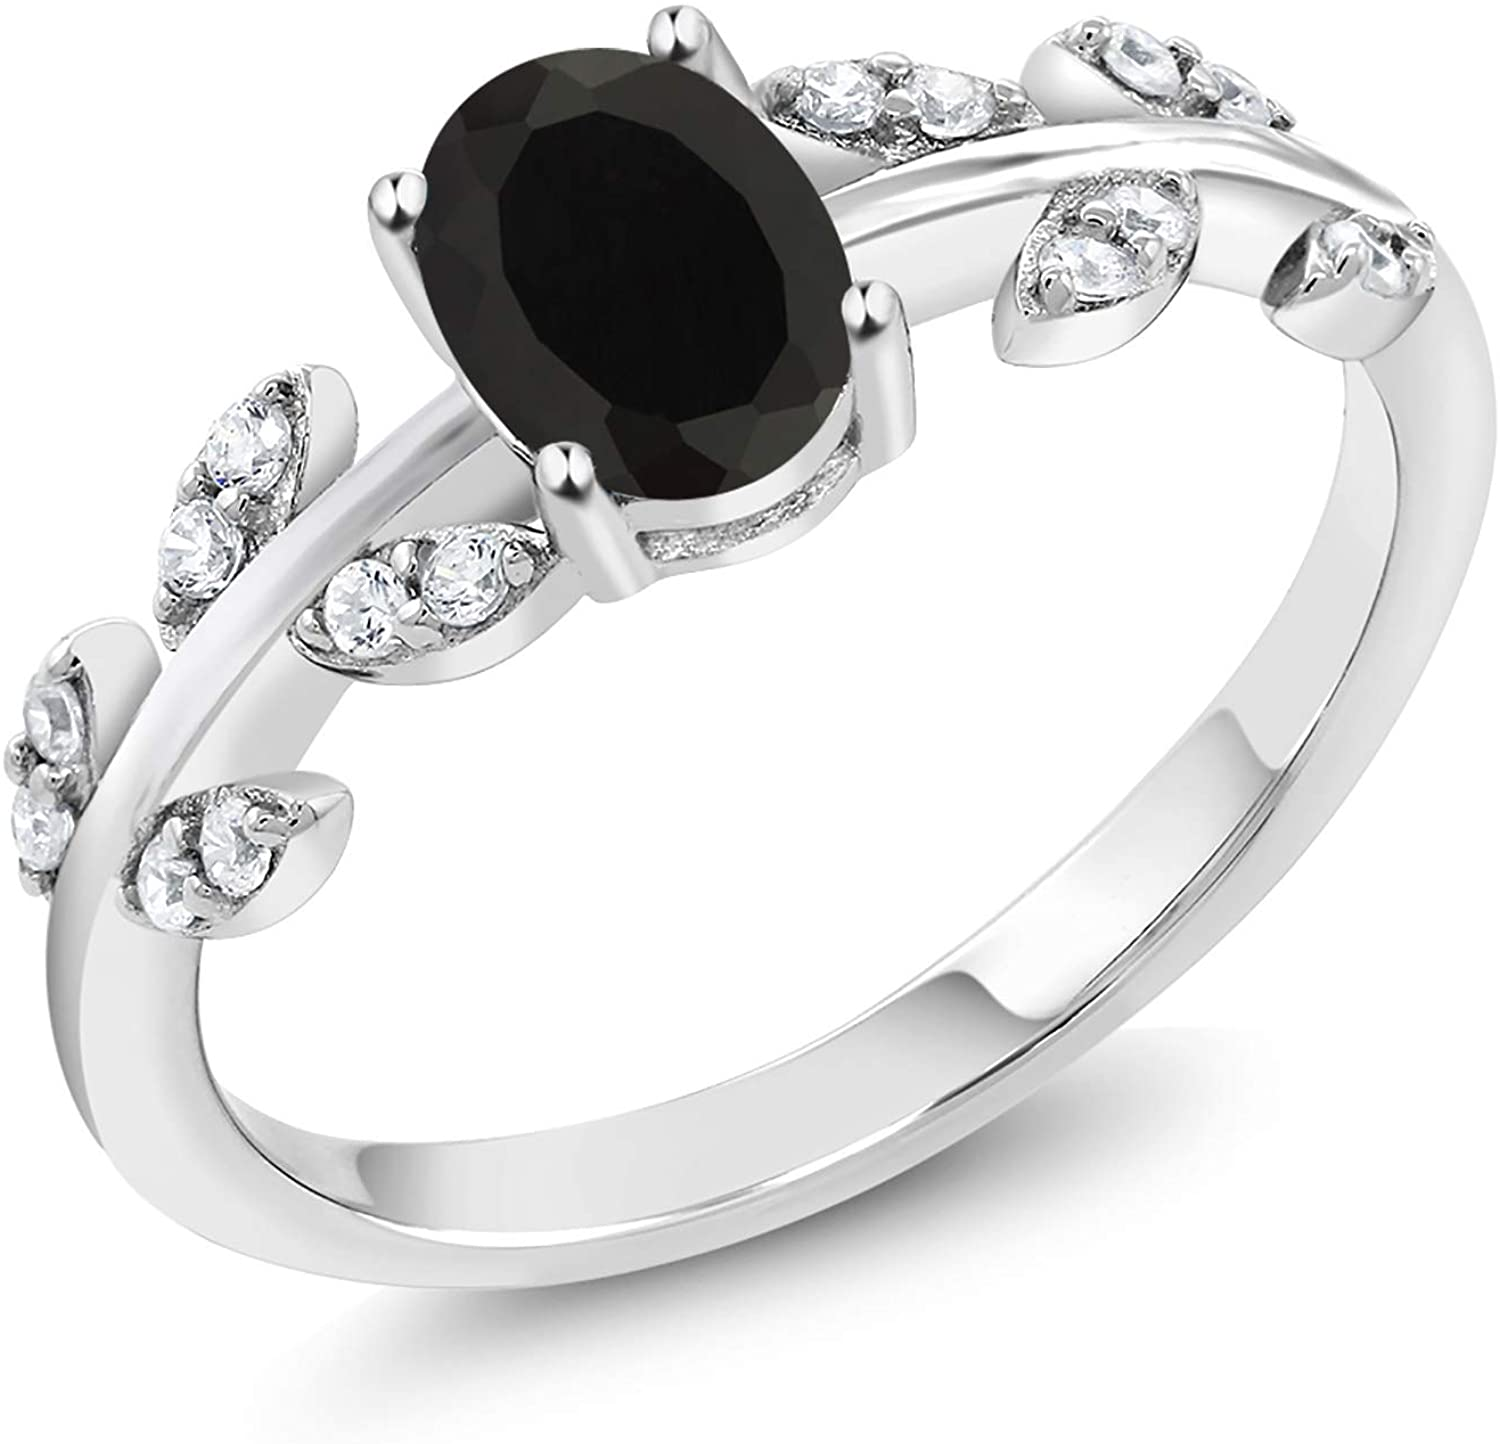 Gem Stone King 925 Sterling Silver Black Onyx Olive Women's Vine Ring 1.01 Ct Oval Gemstone (Available 5,6,7,8,9)